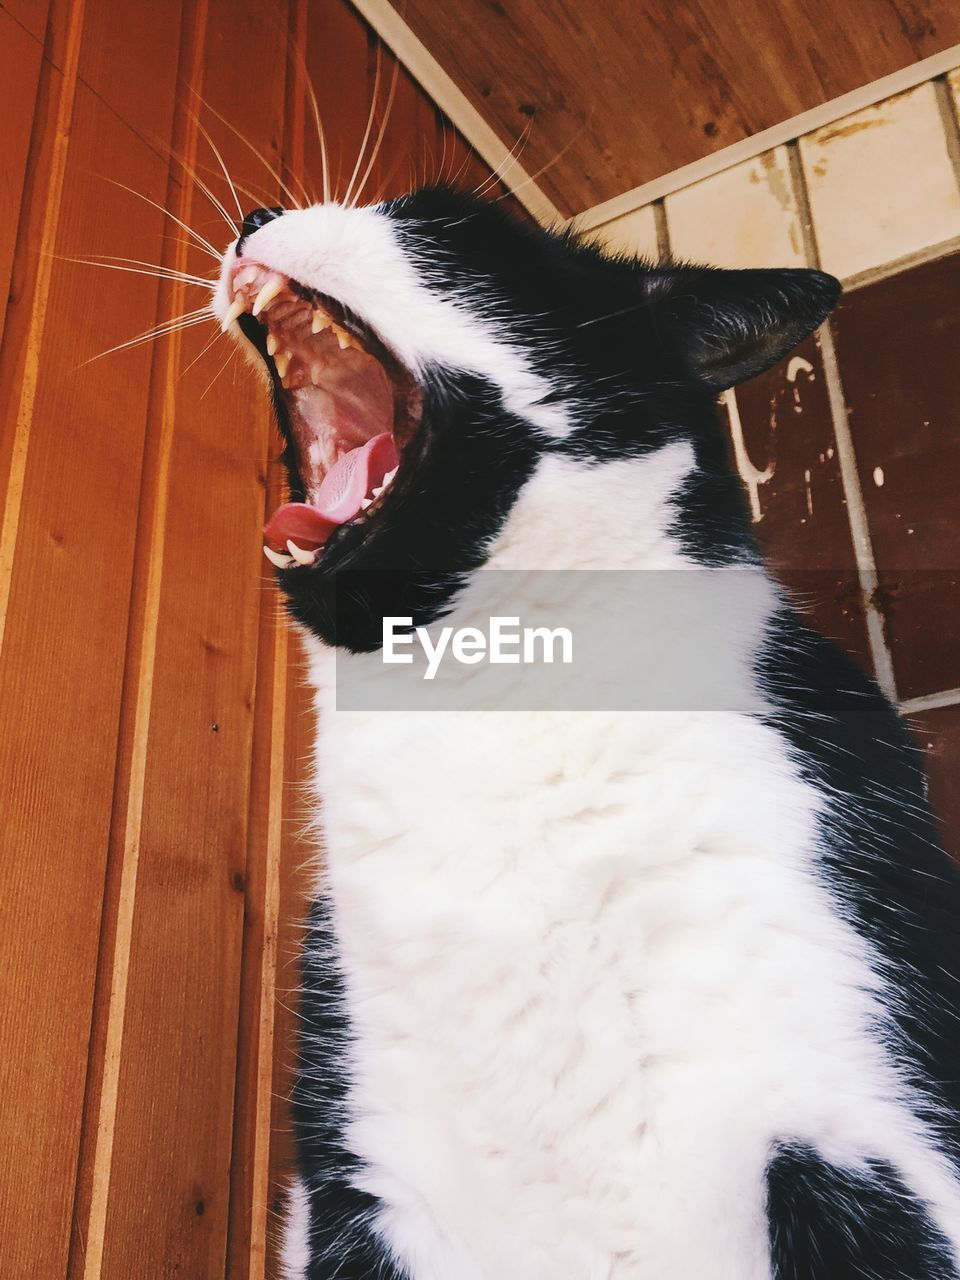 domestic animals, pets, domestic, mammal, one animal, animal, animal themes, cat, domestic cat, vertebrate, feline, mouth open, mouth, whisker, indoors, close-up, no people, yawning, white color, home interior, animal mouth